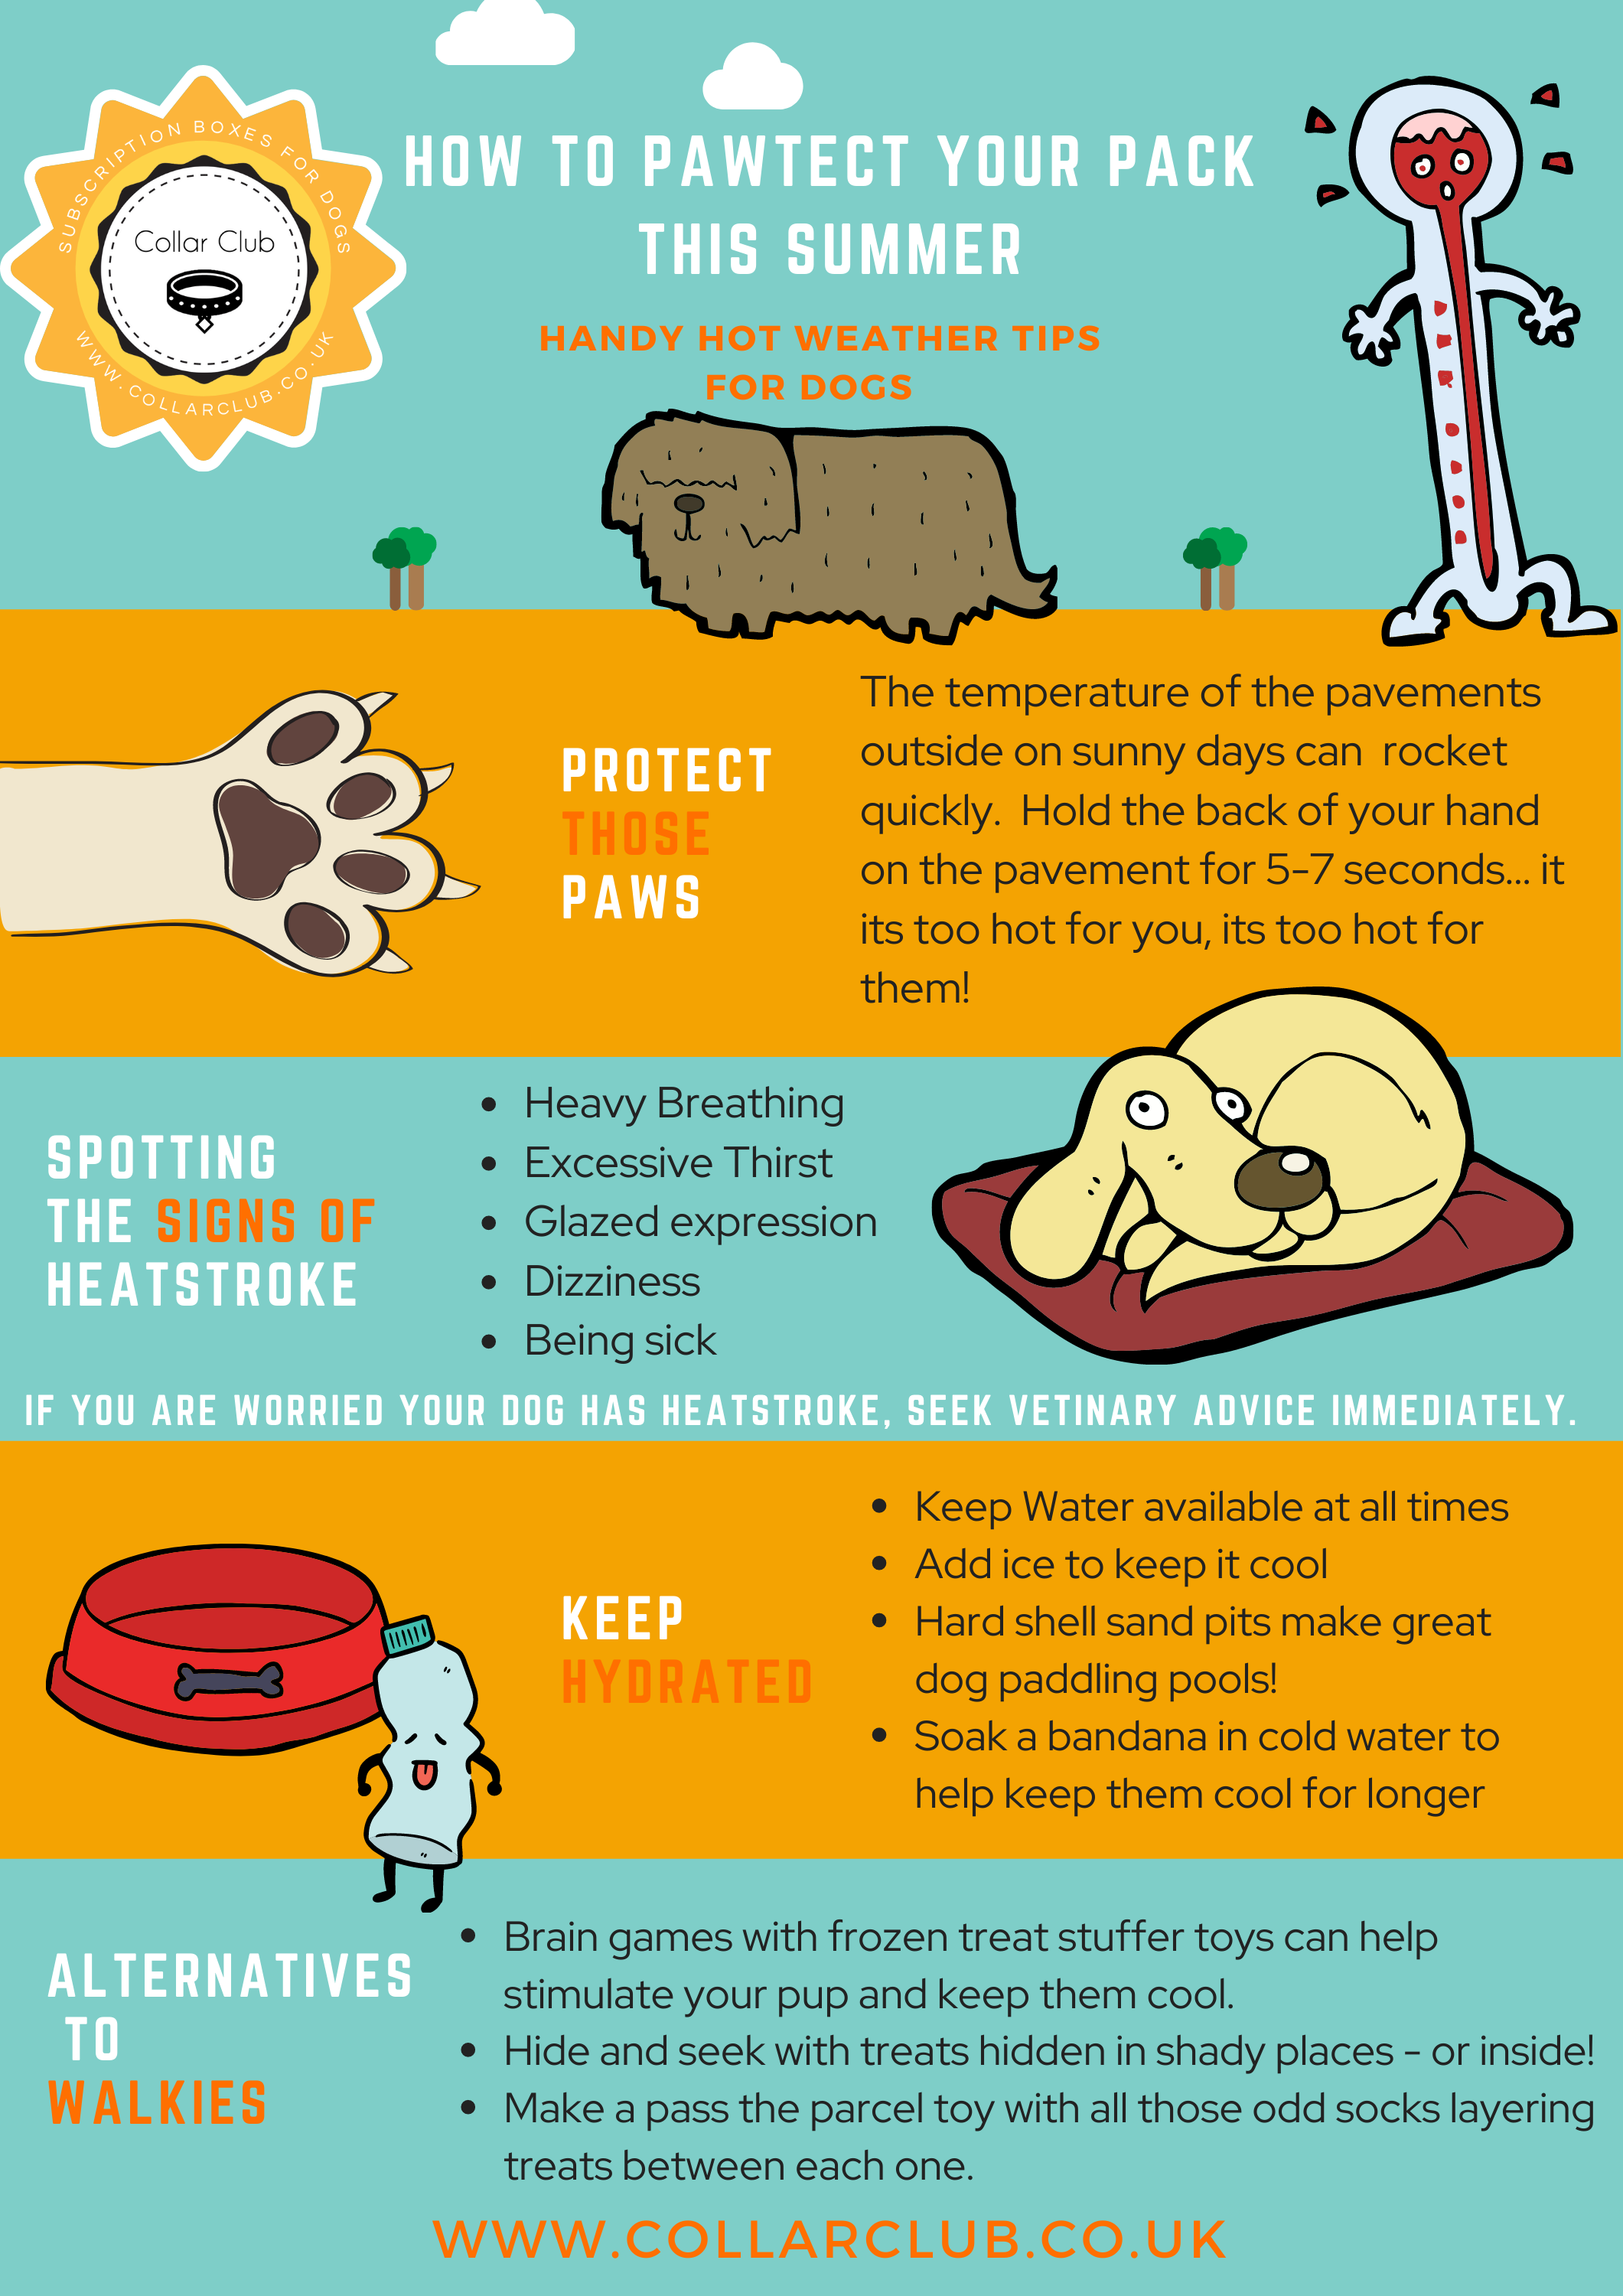 Top Tips For Keeping Your Dog Safe in Summer